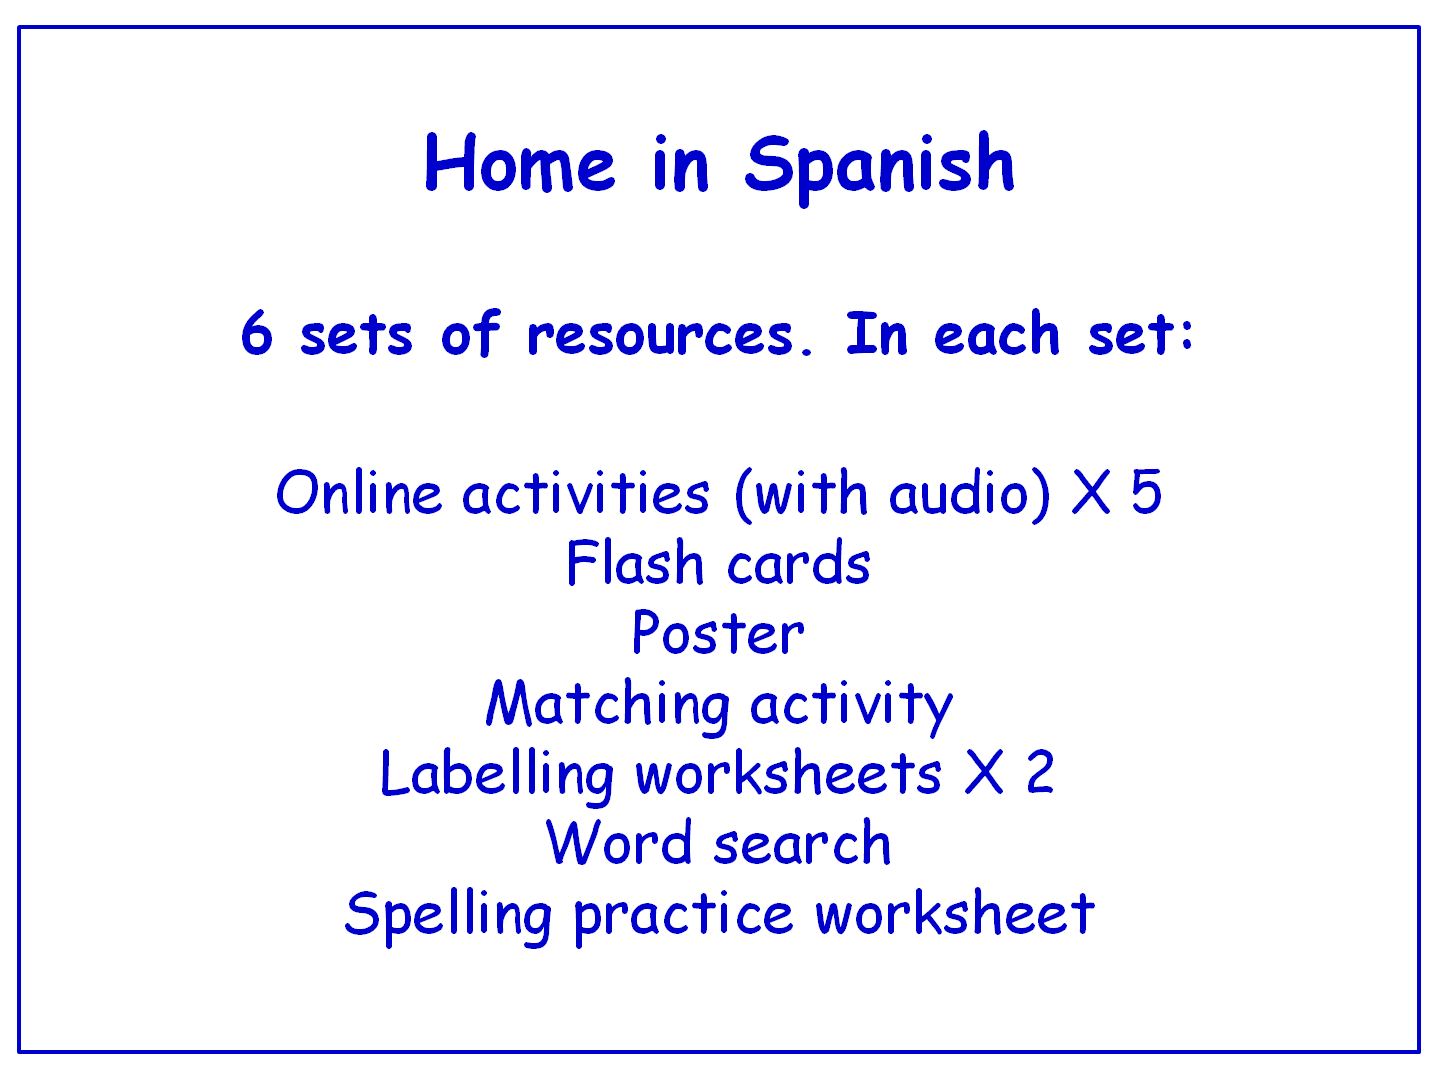 Home in Spanish  Worksheets, Games, Activities and Flash Cards (with audio) Bundle (6 sets)